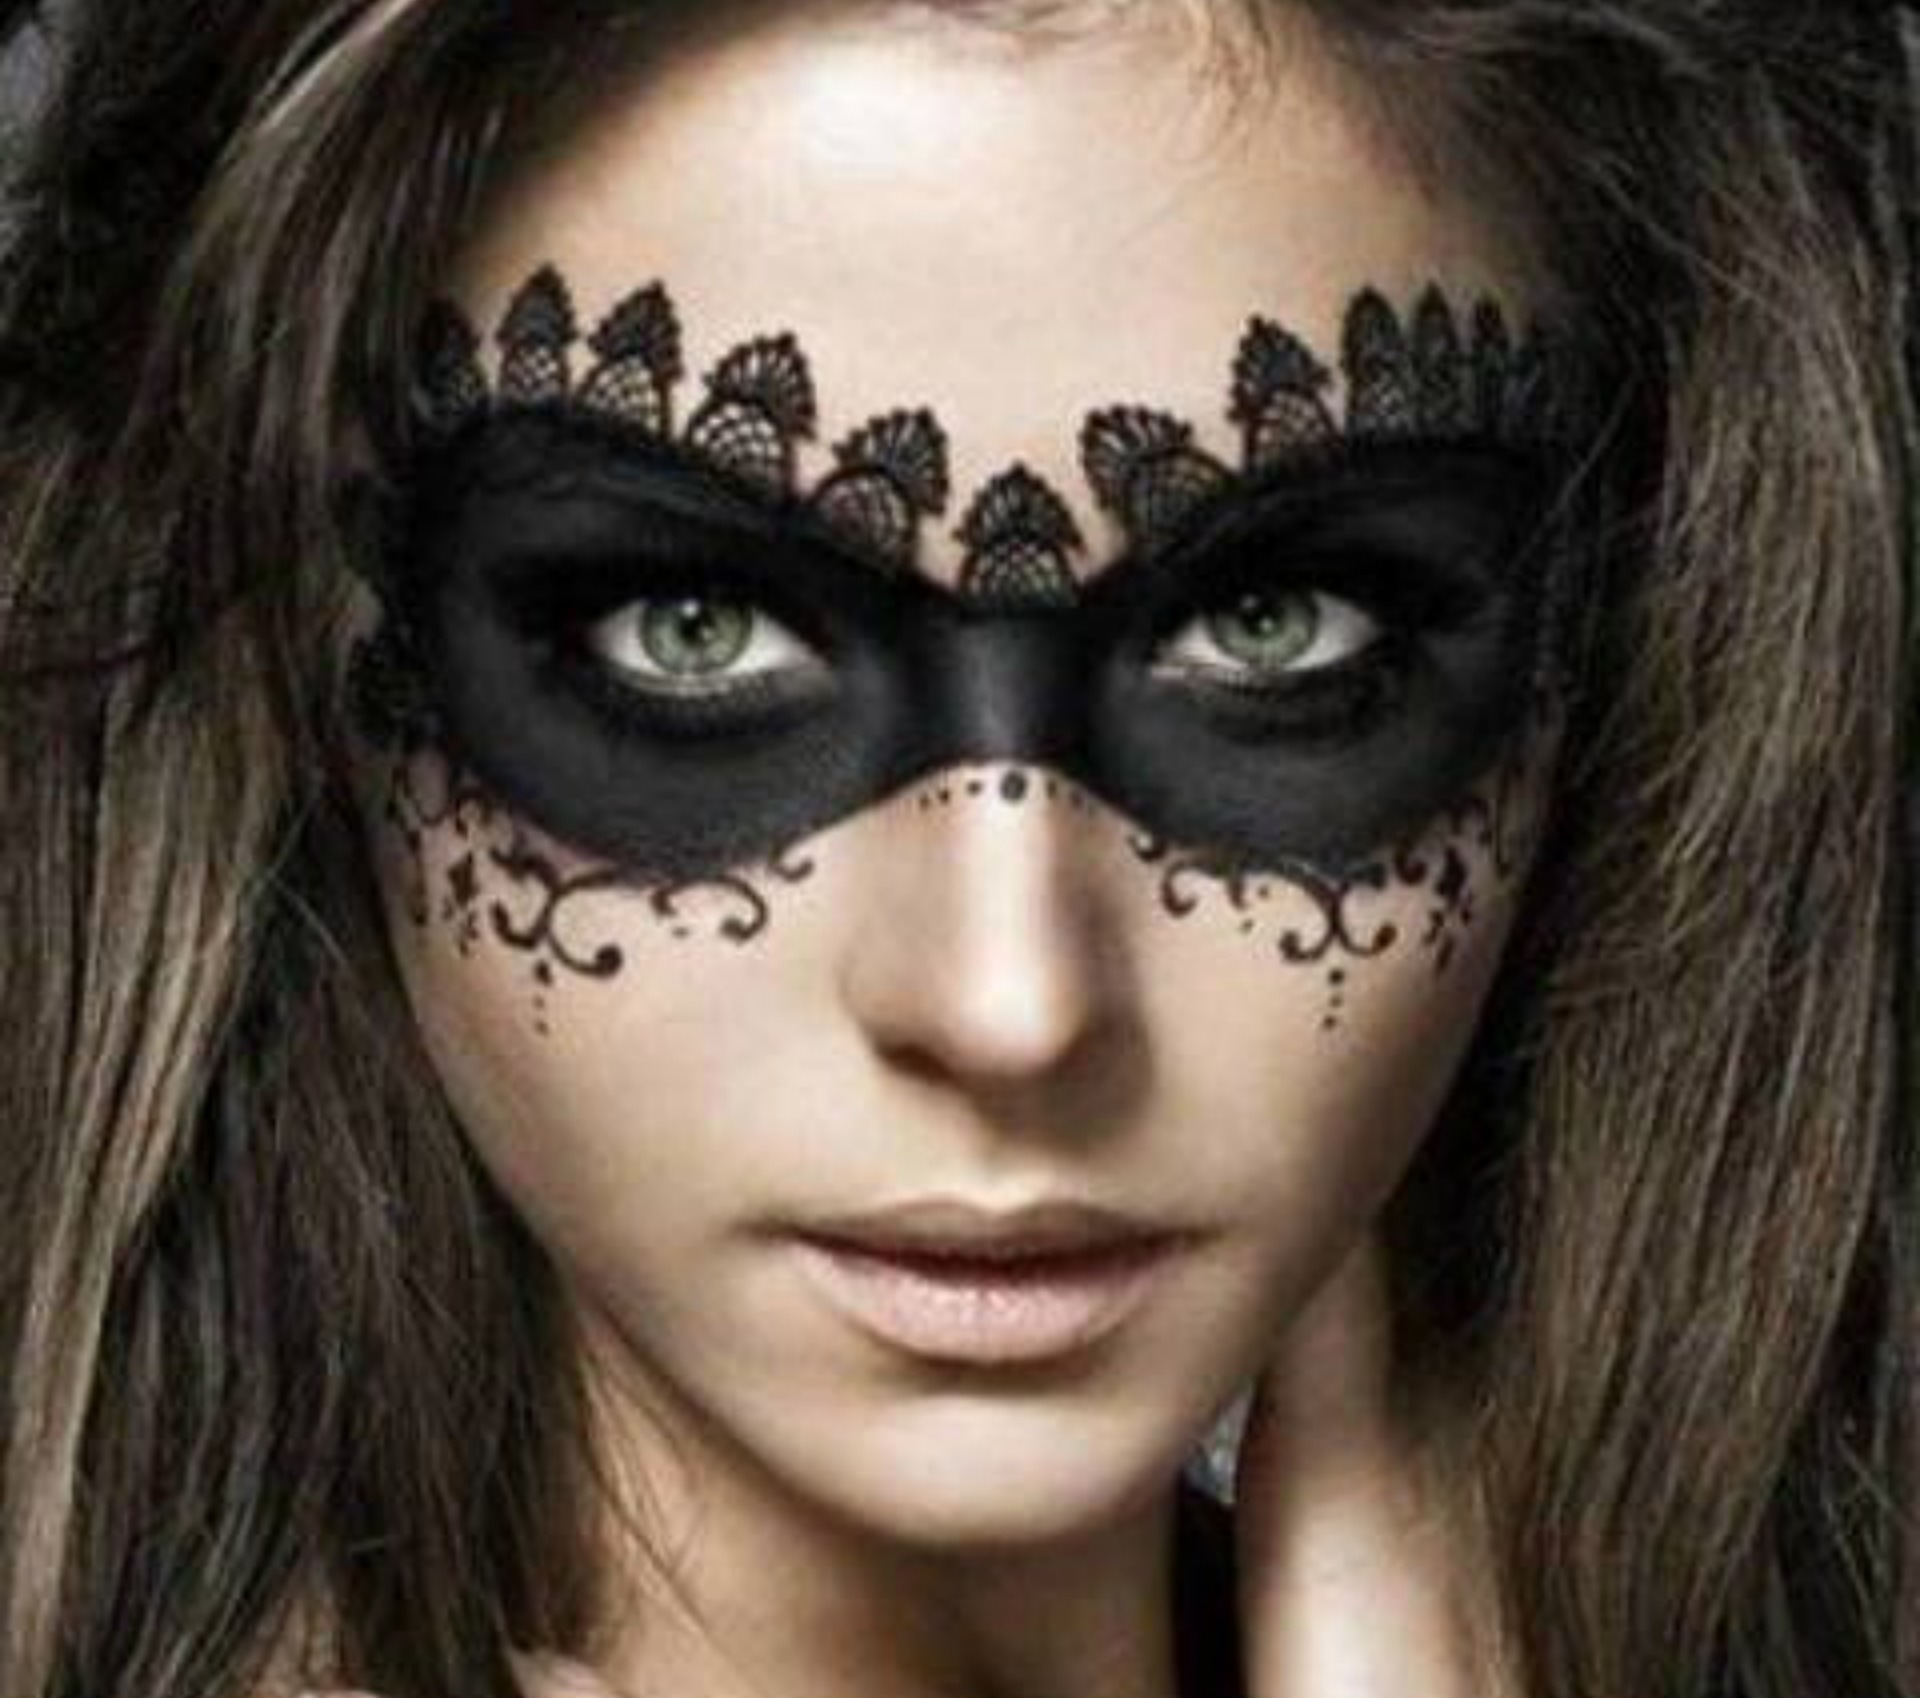 Sexy mask Halloween makeup for adults